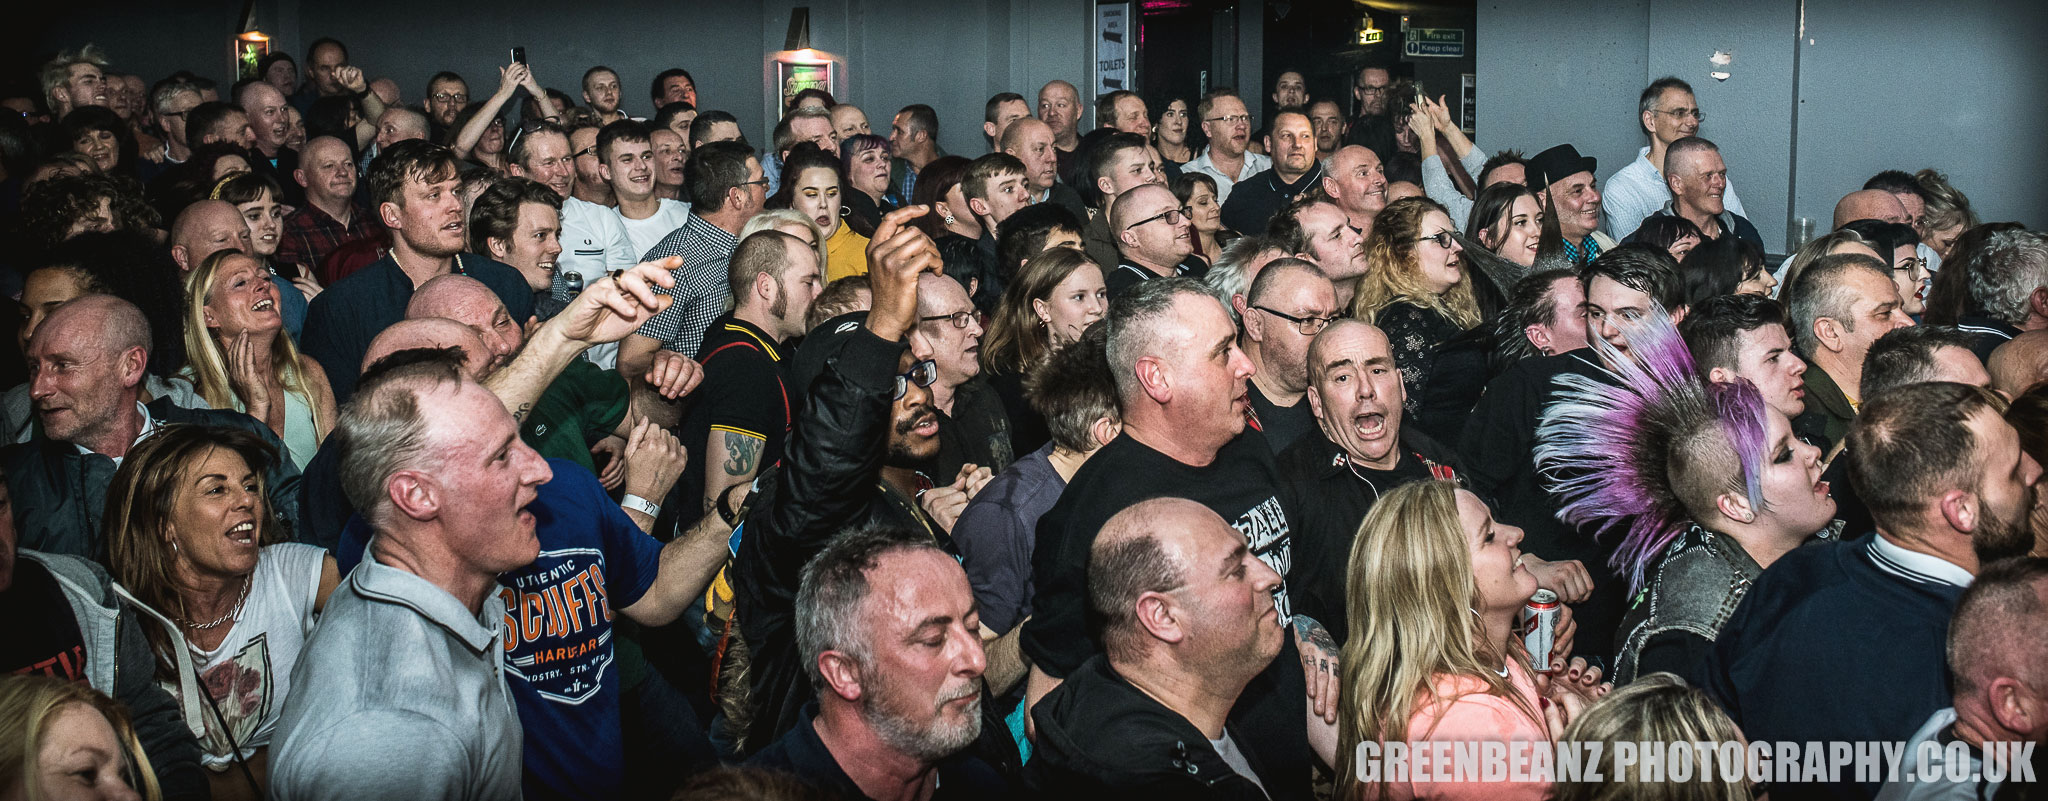 UK Ska Fans skanking to Bad Manners at Plymouth's Hub in 2018